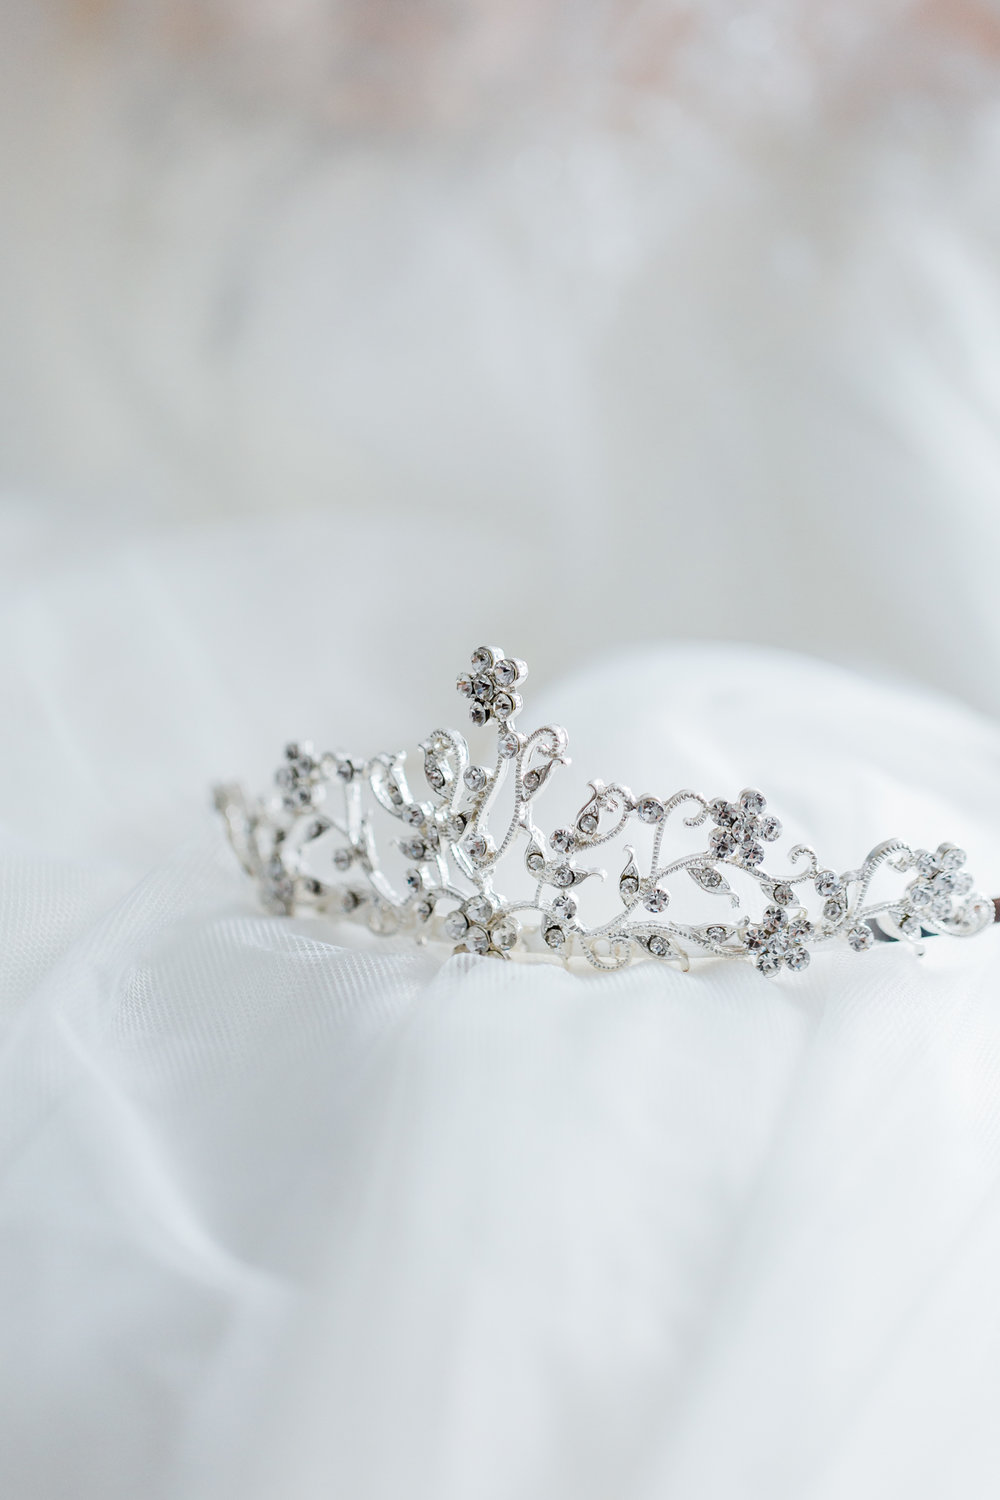 Disney Bridal Tiara - Maryland wedding